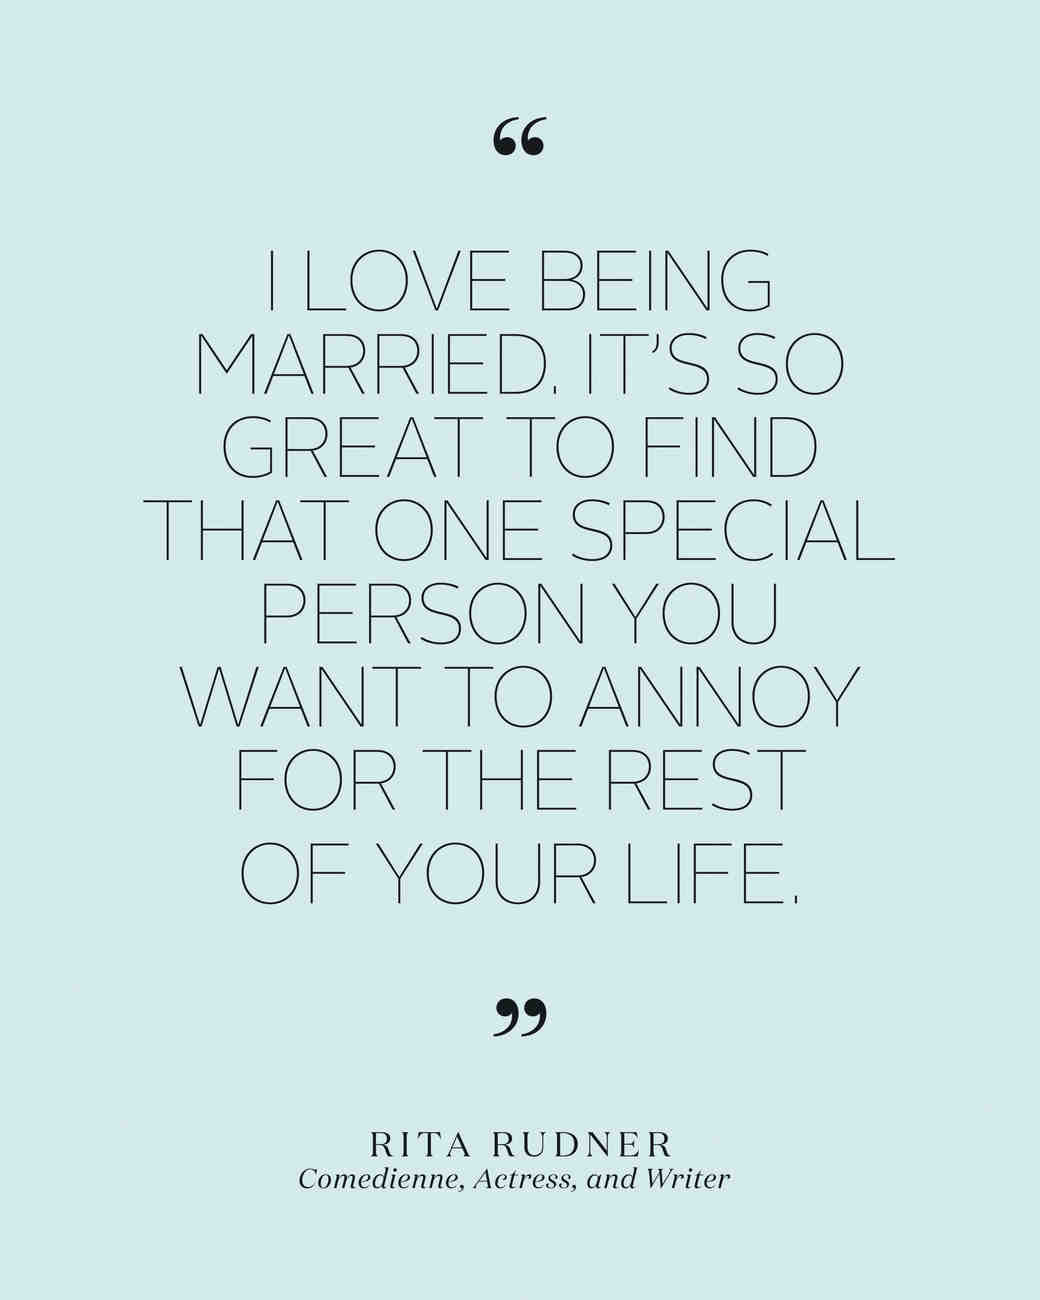 msw-wedding-quotes3-0315.jpg